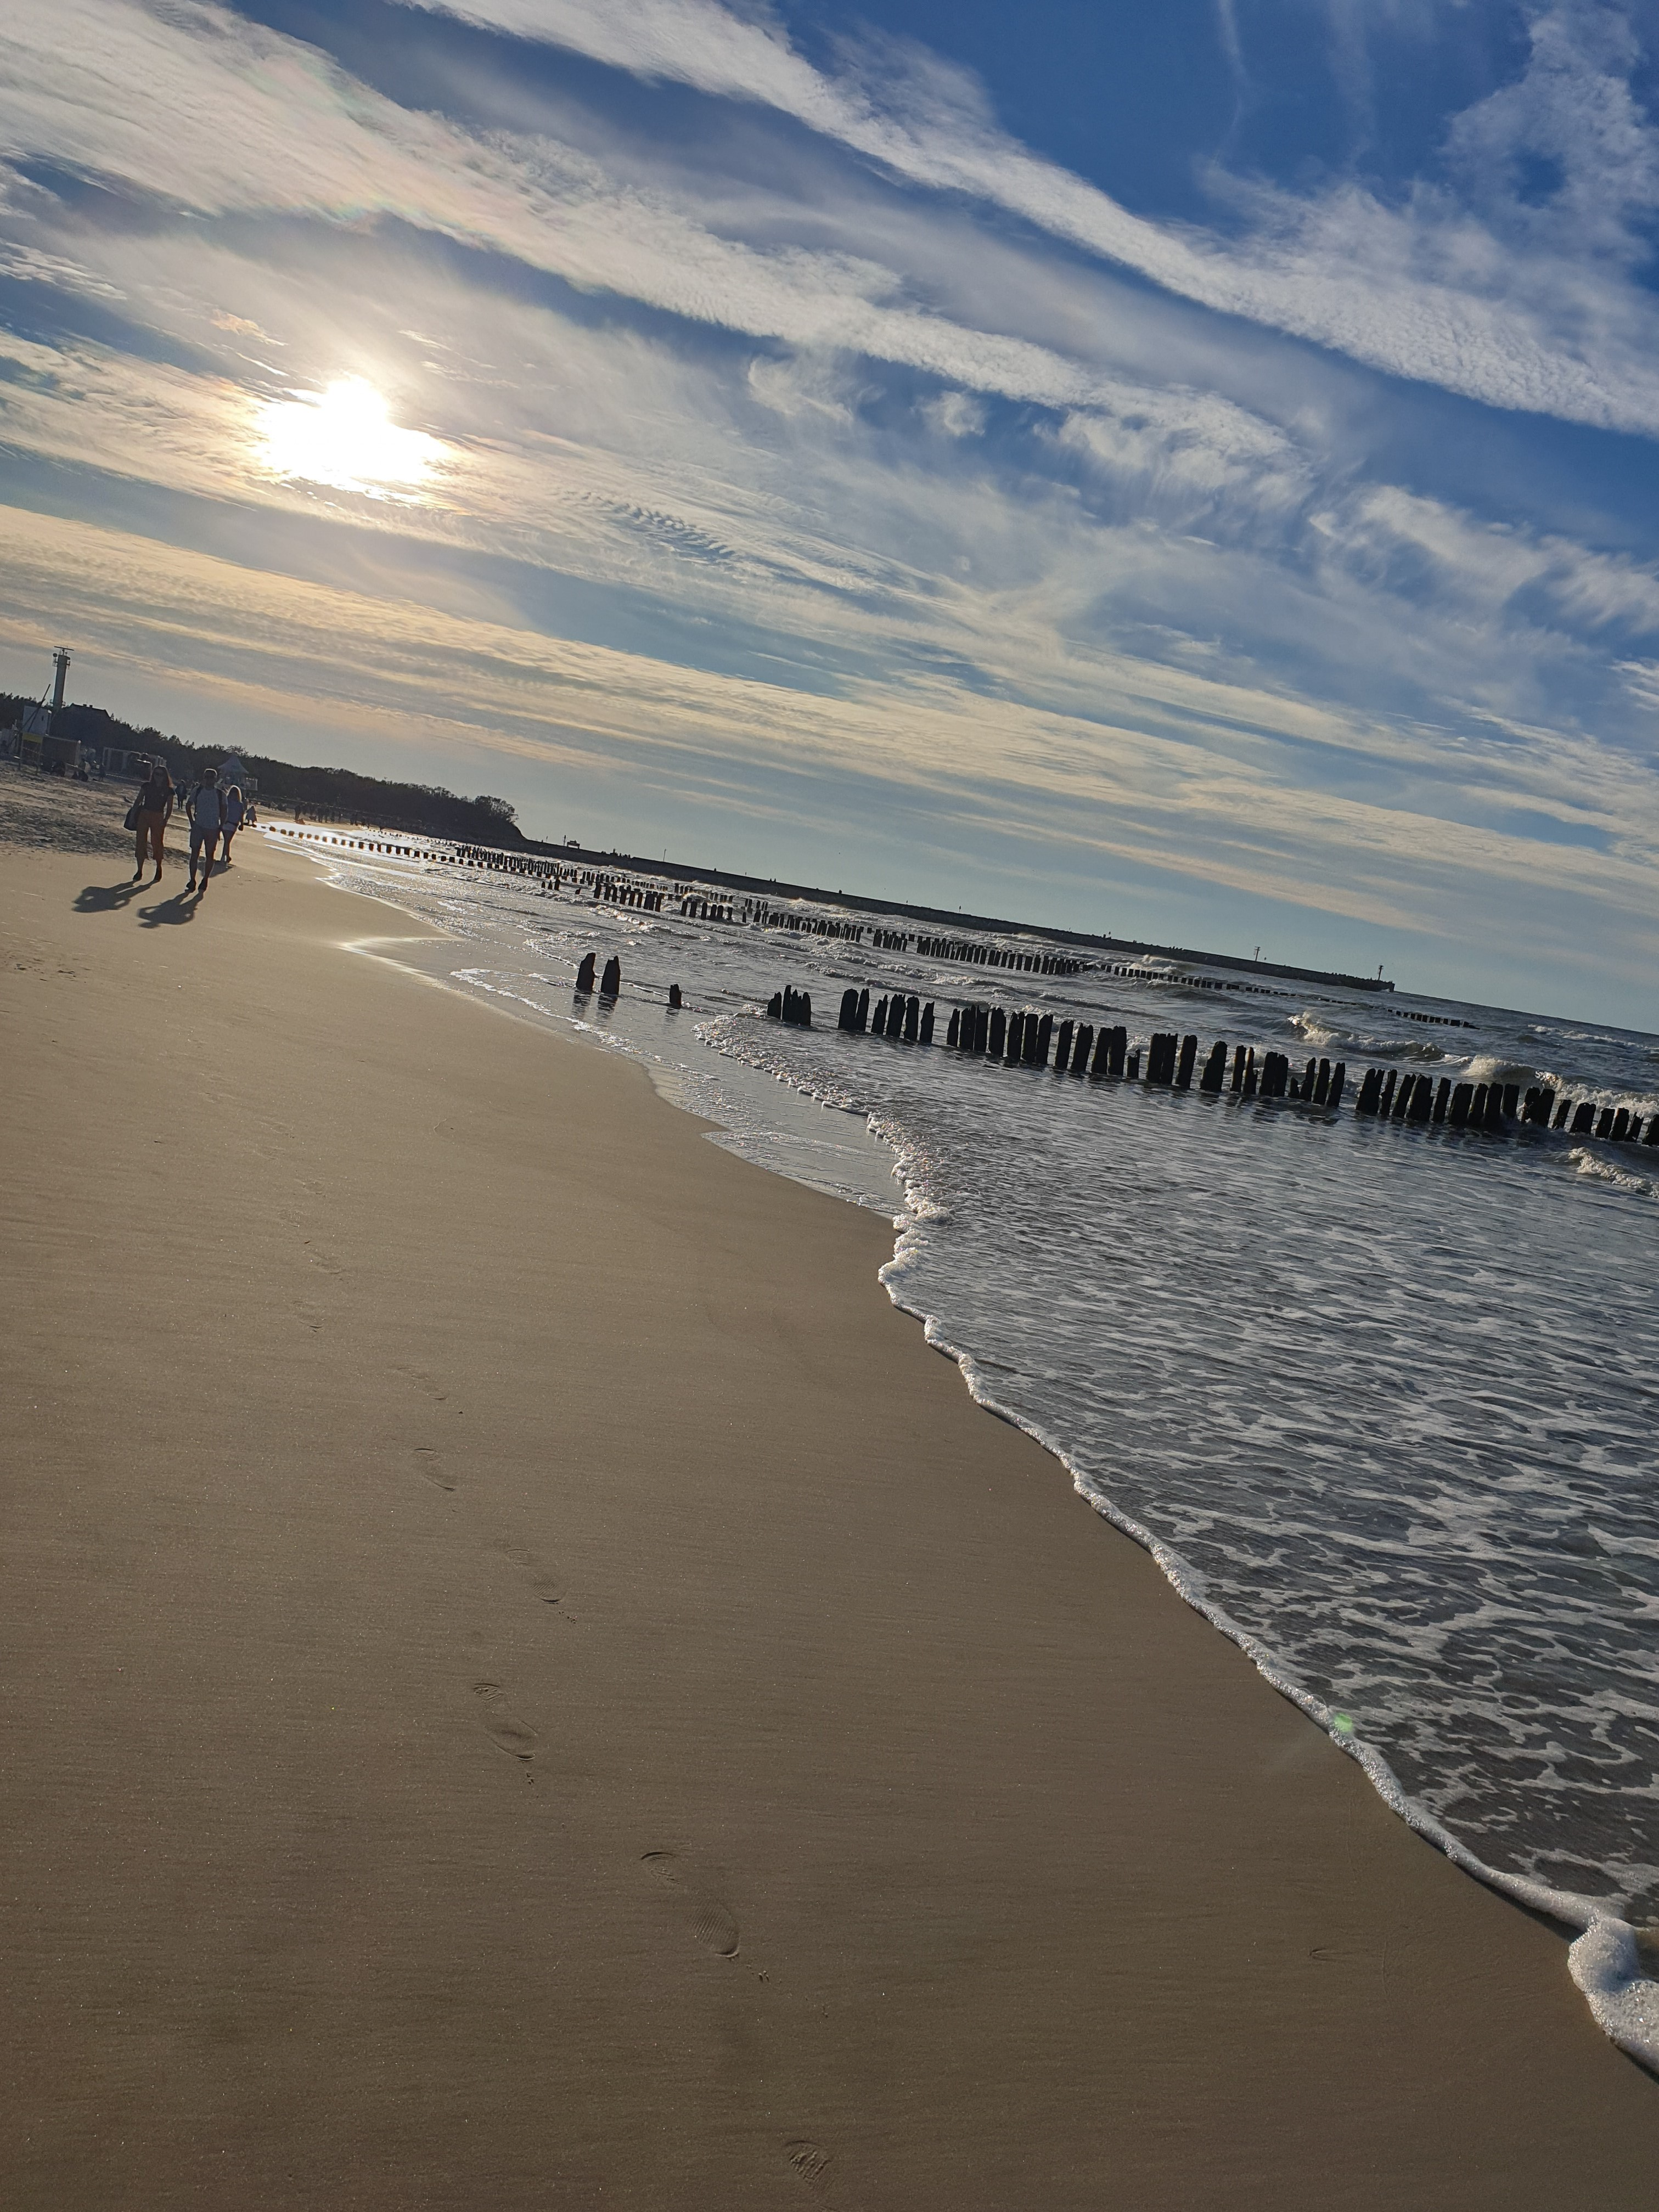 A picture I took of the gentle waves caressing the smooth sand as the sun starts to set in the evening, behind fluffy clouds